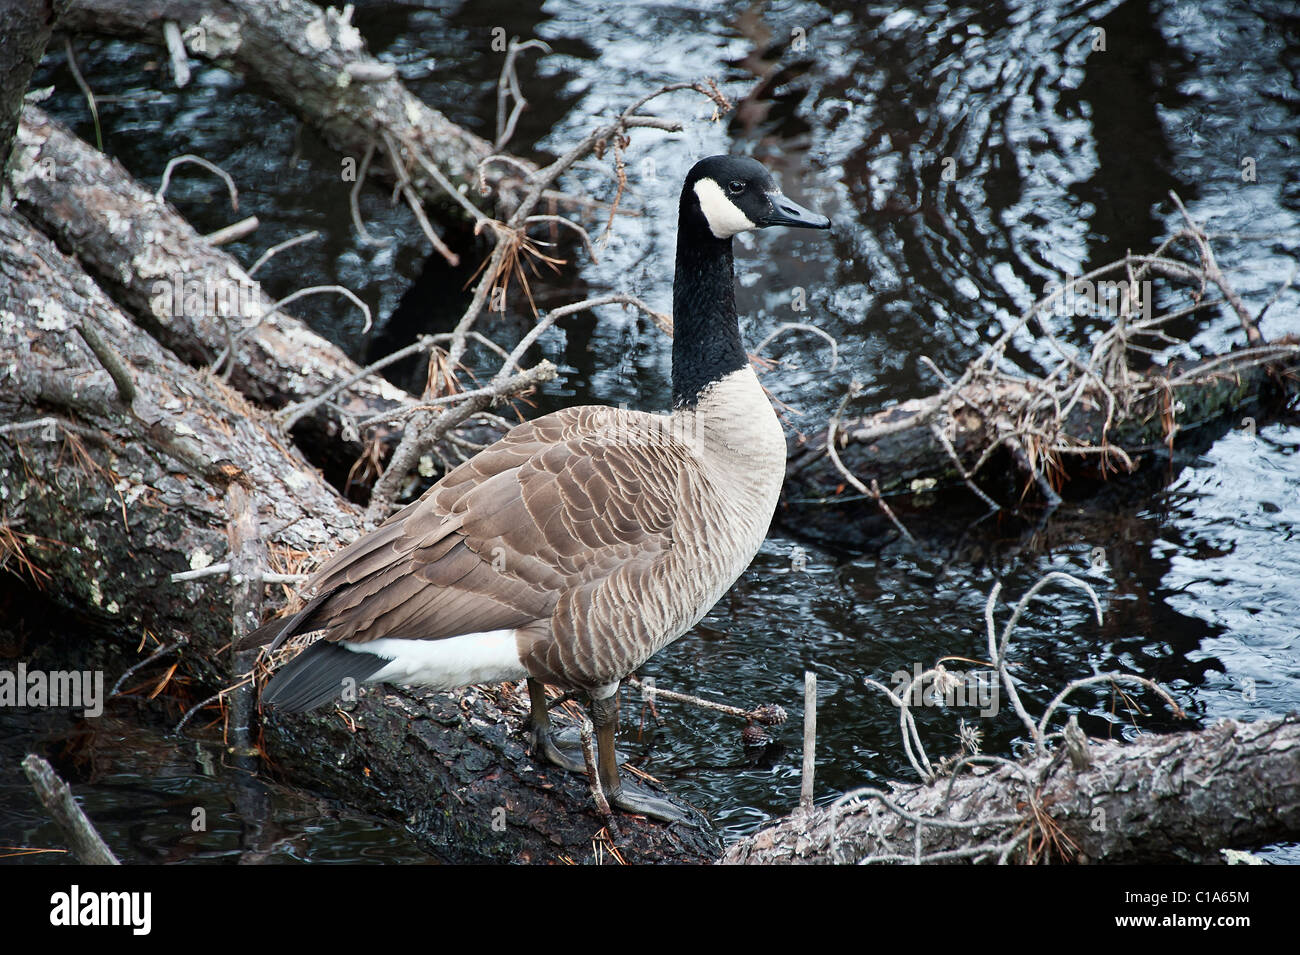 Canadian goose. - Stock Image